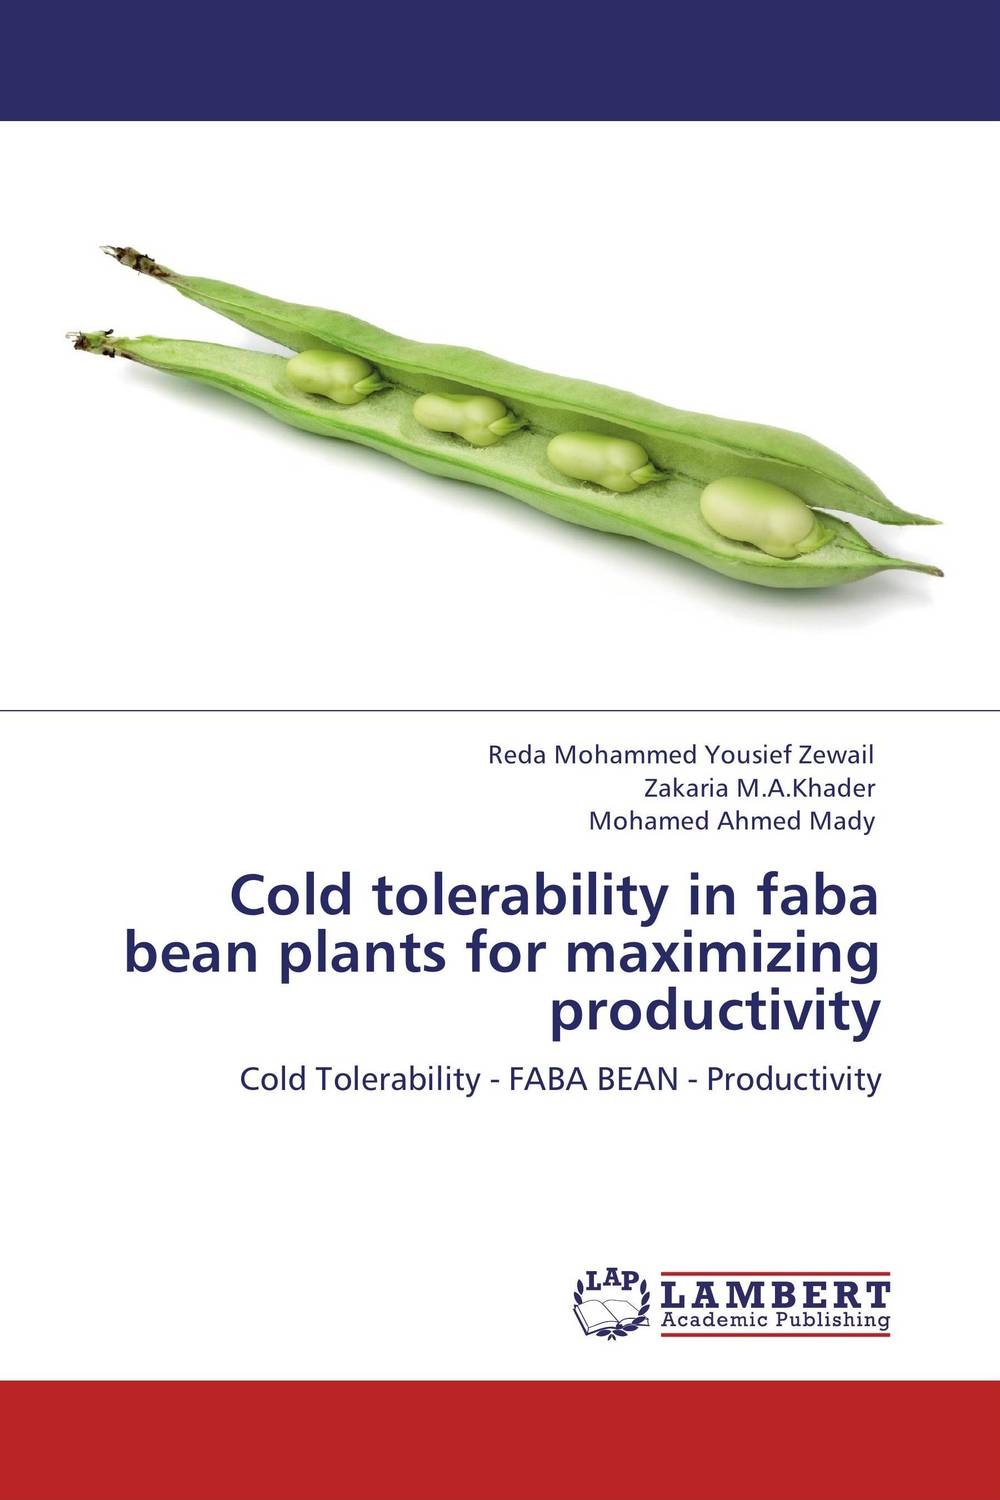 Cold tolerability in faba bean plants for maximizing productivity seeing things as they are